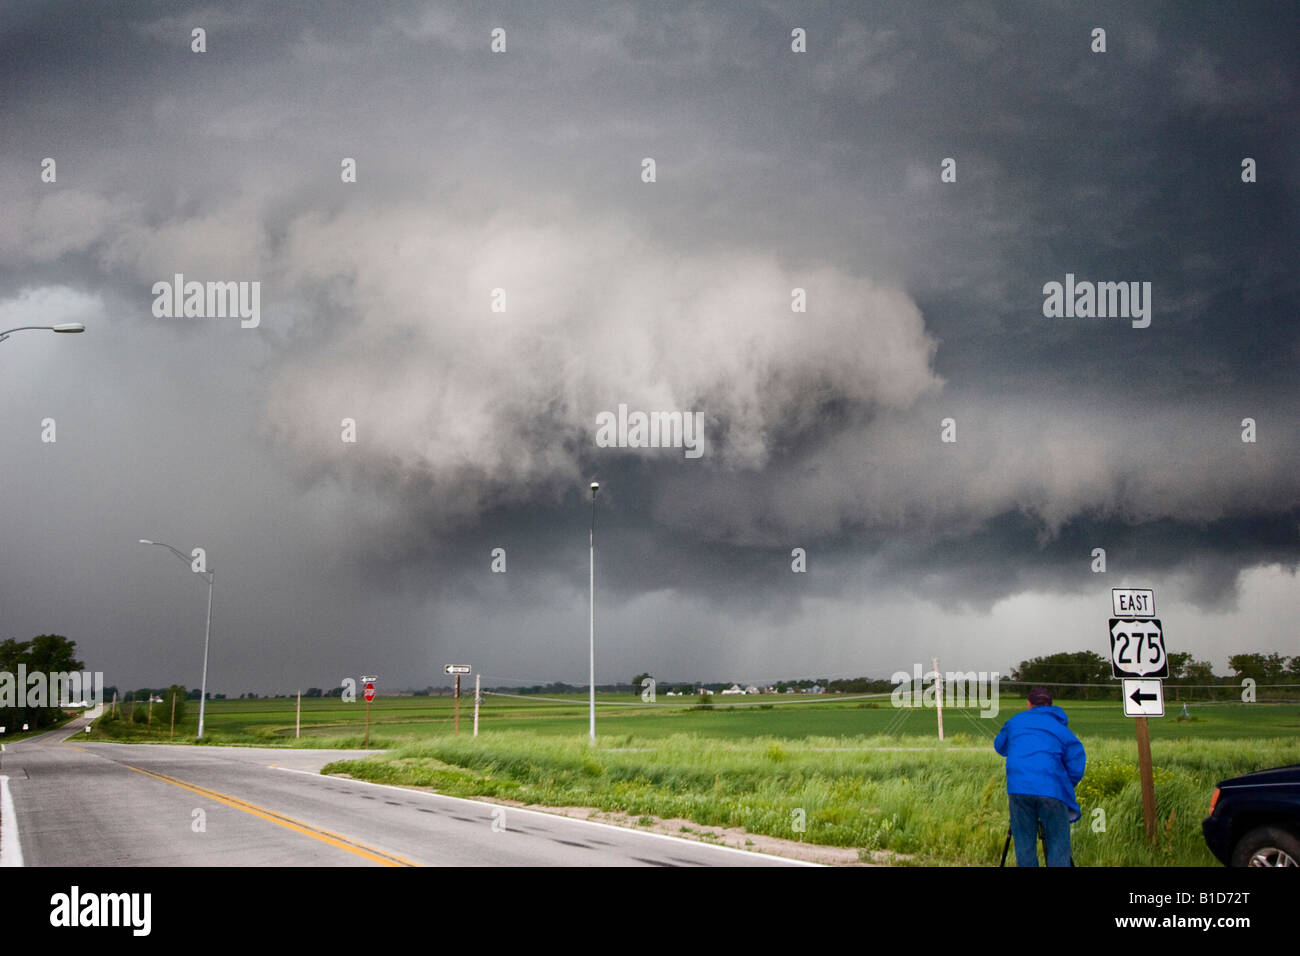 A wall cloud forms on a squall line near Valley Nebraska June 11 2008 as a storm chaser films in the forground - Stock Image